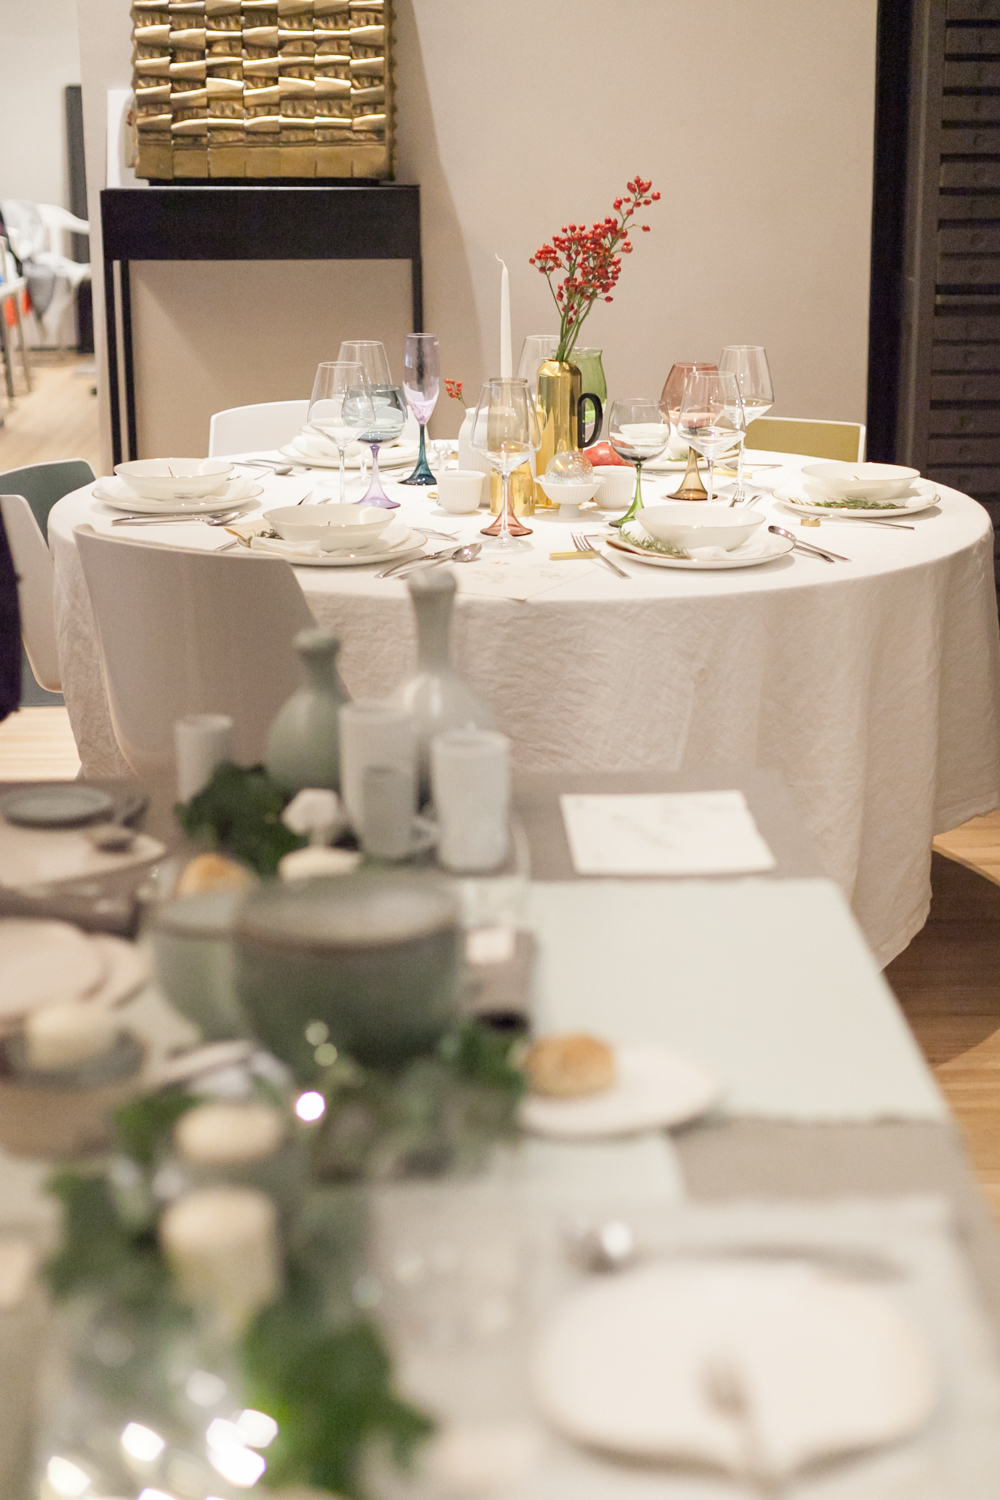 SET THE TABLE STYLING EVENTO SPAZIO MATERIAE NAPOLI FORME DI FARINA TAVOLA NATALE PHOTO (4 di 16).jpg